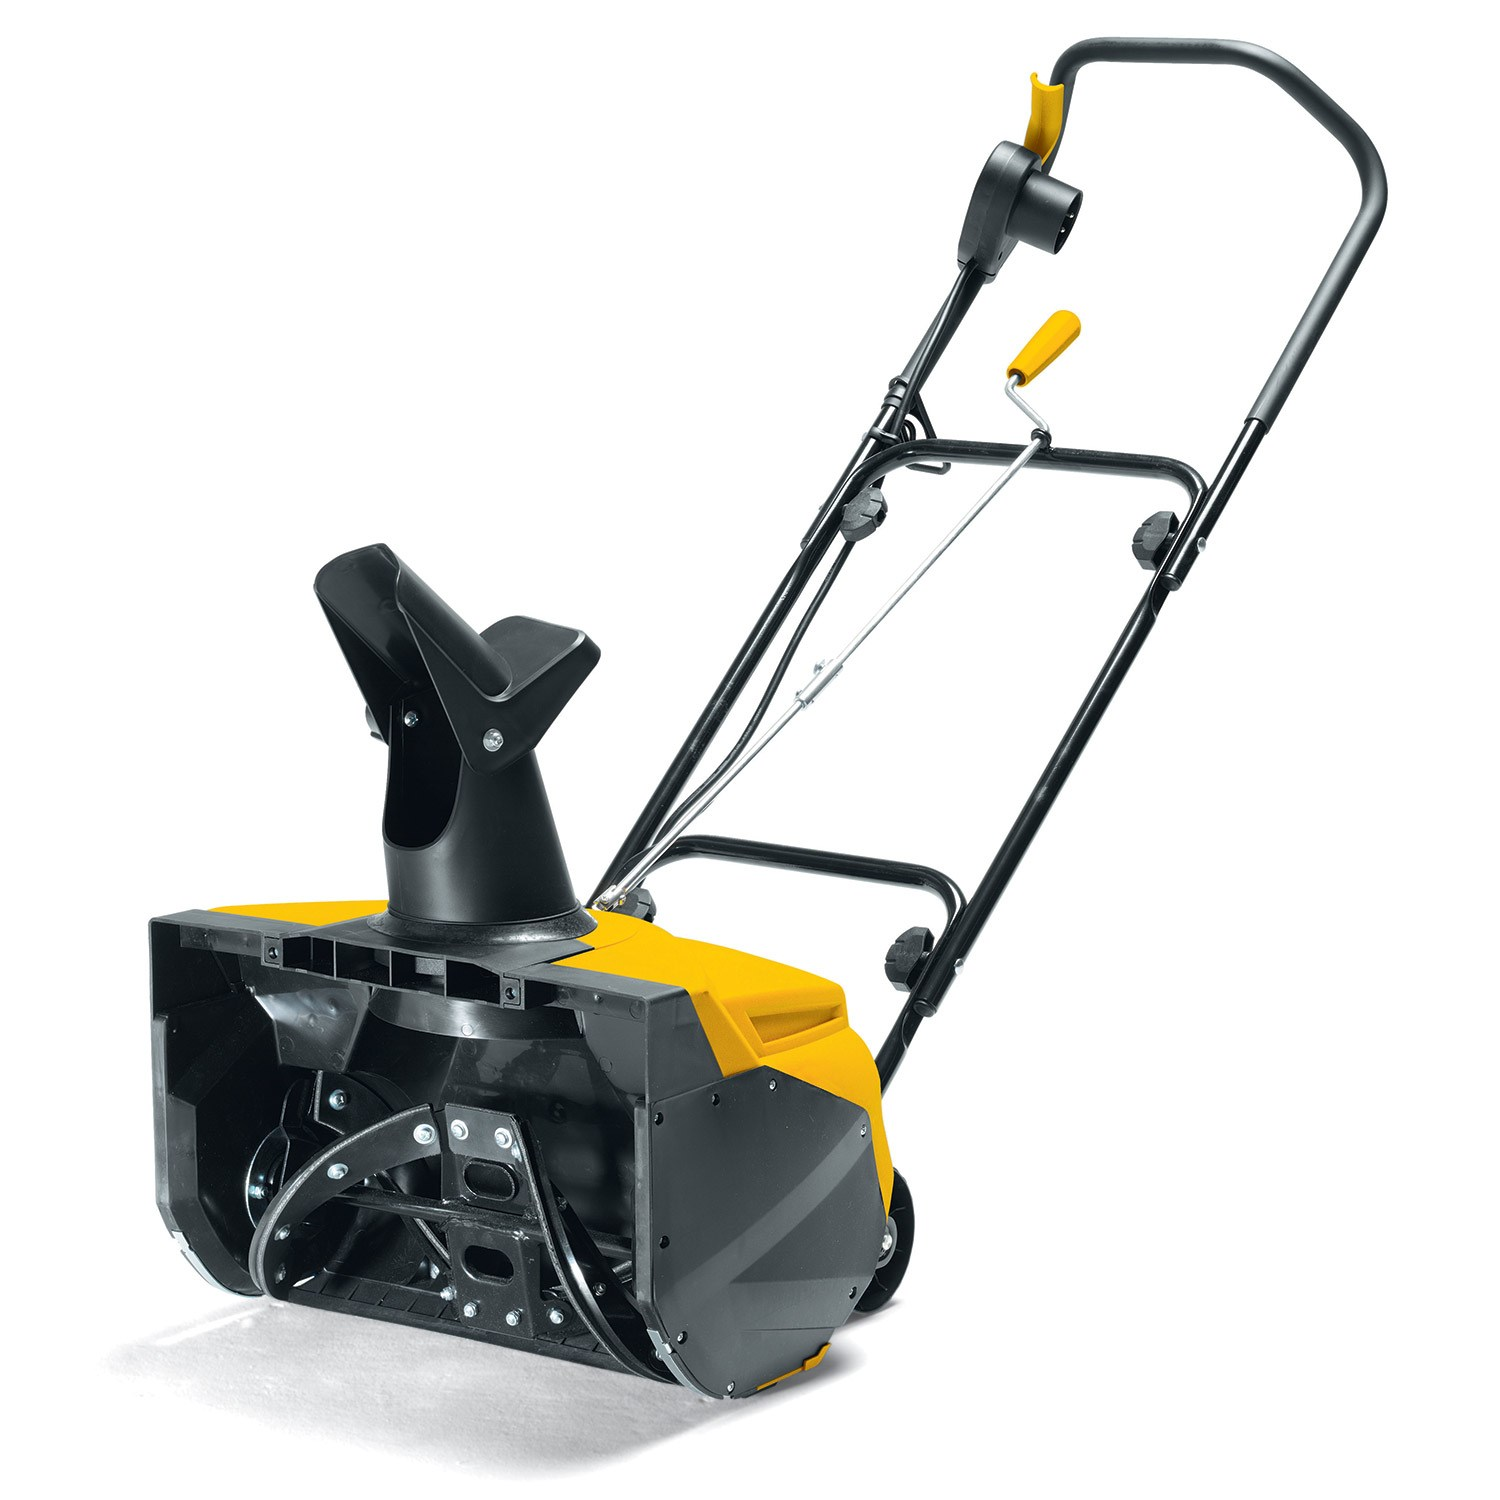 Powerful Handheld Electric Snow Blowers : Stiga electric snow thrower